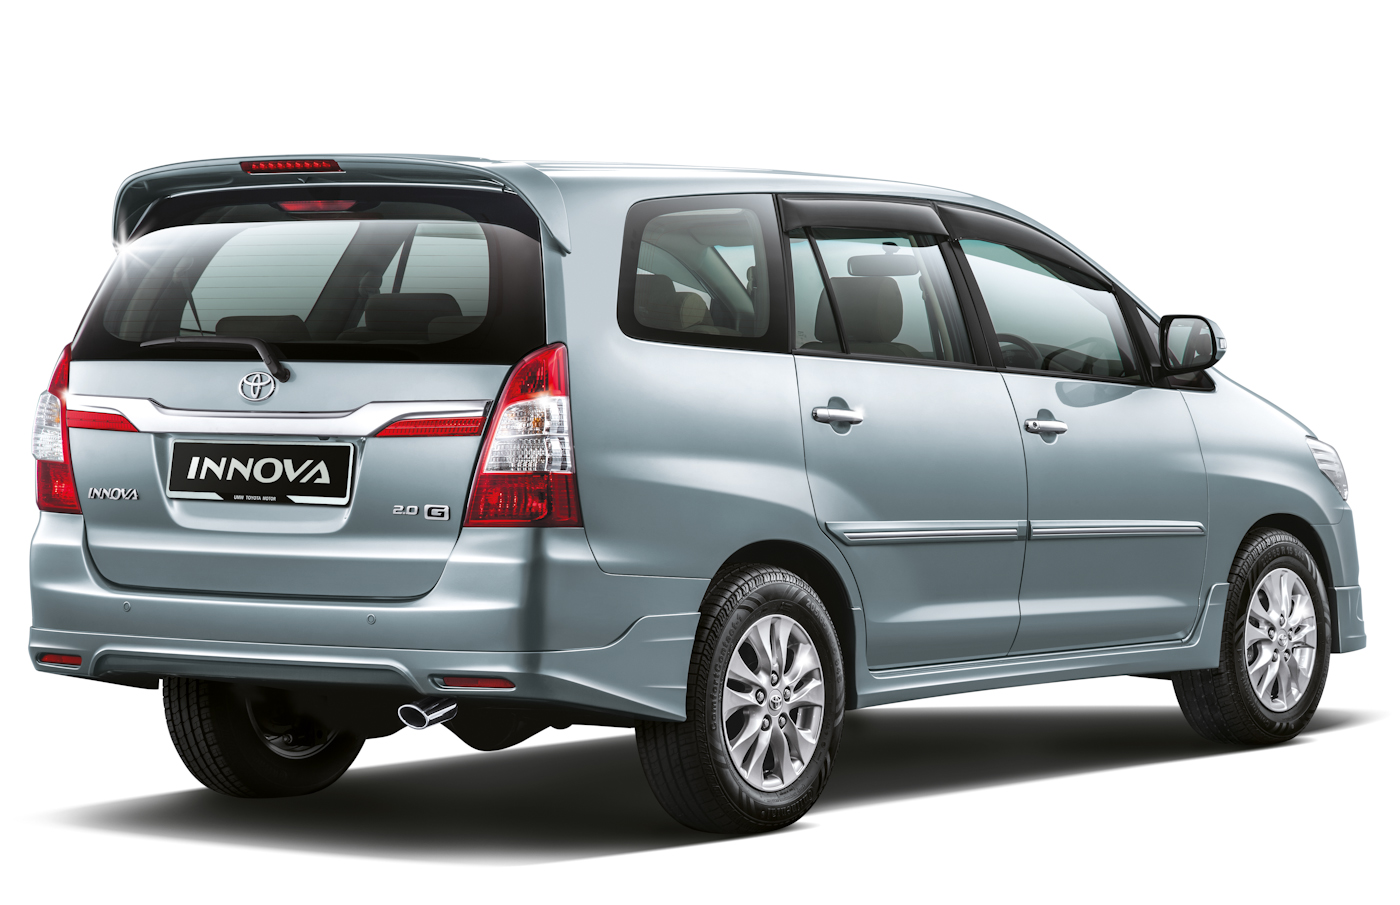 bodykit all new kijang innova brand vellfire price in malaysia 2014 toyota facelift now from